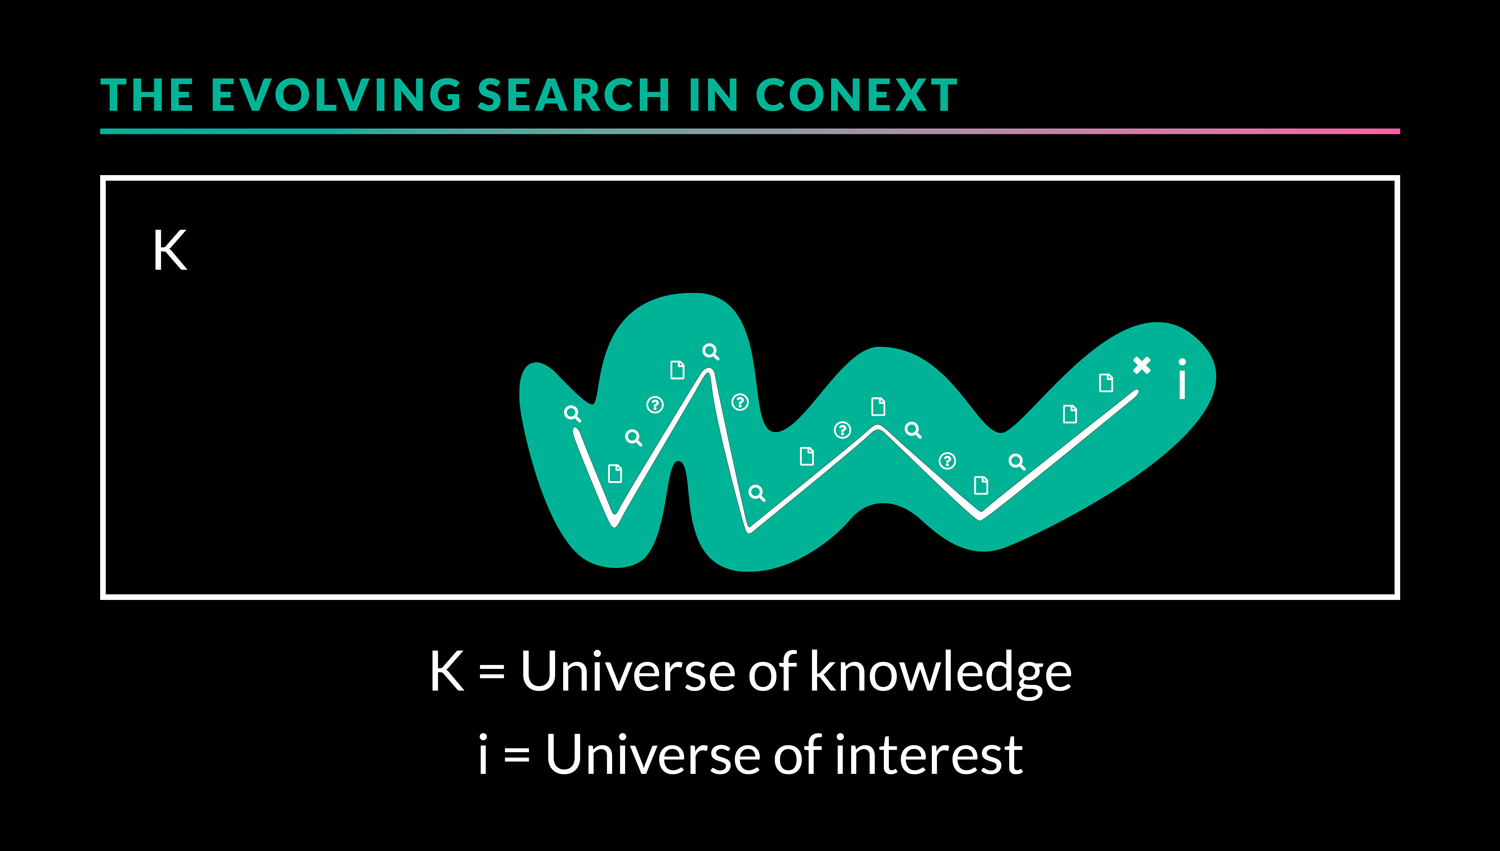 the evolving search in context